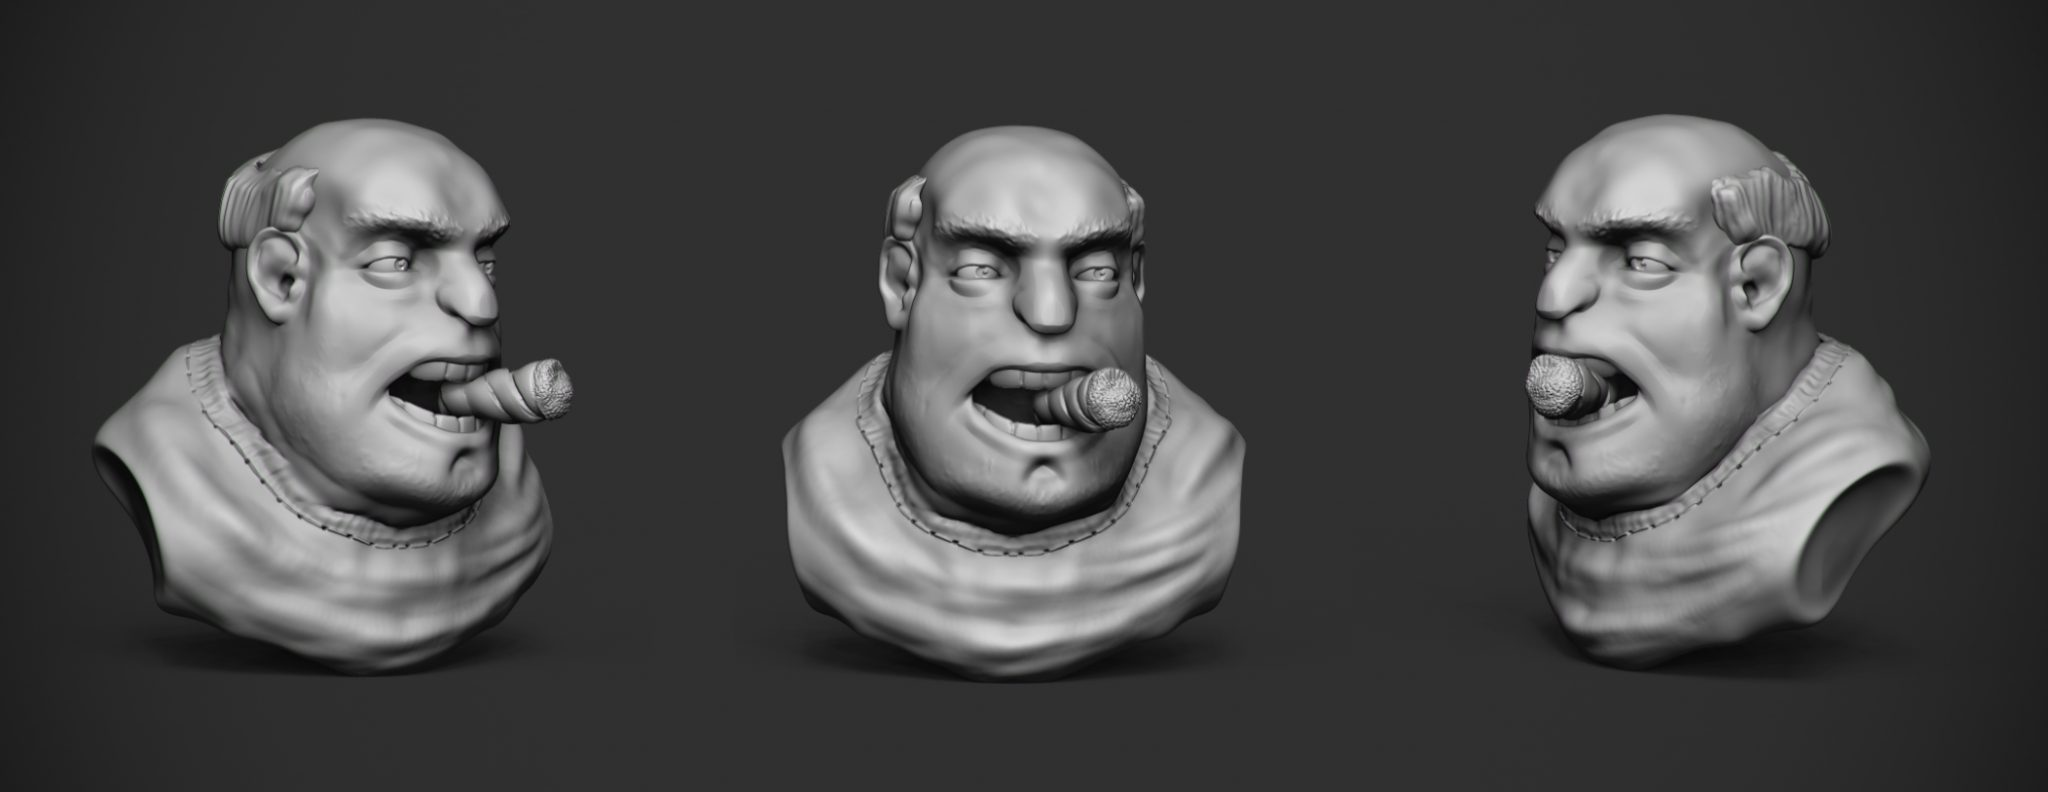 cigar speed sulpt zbrush